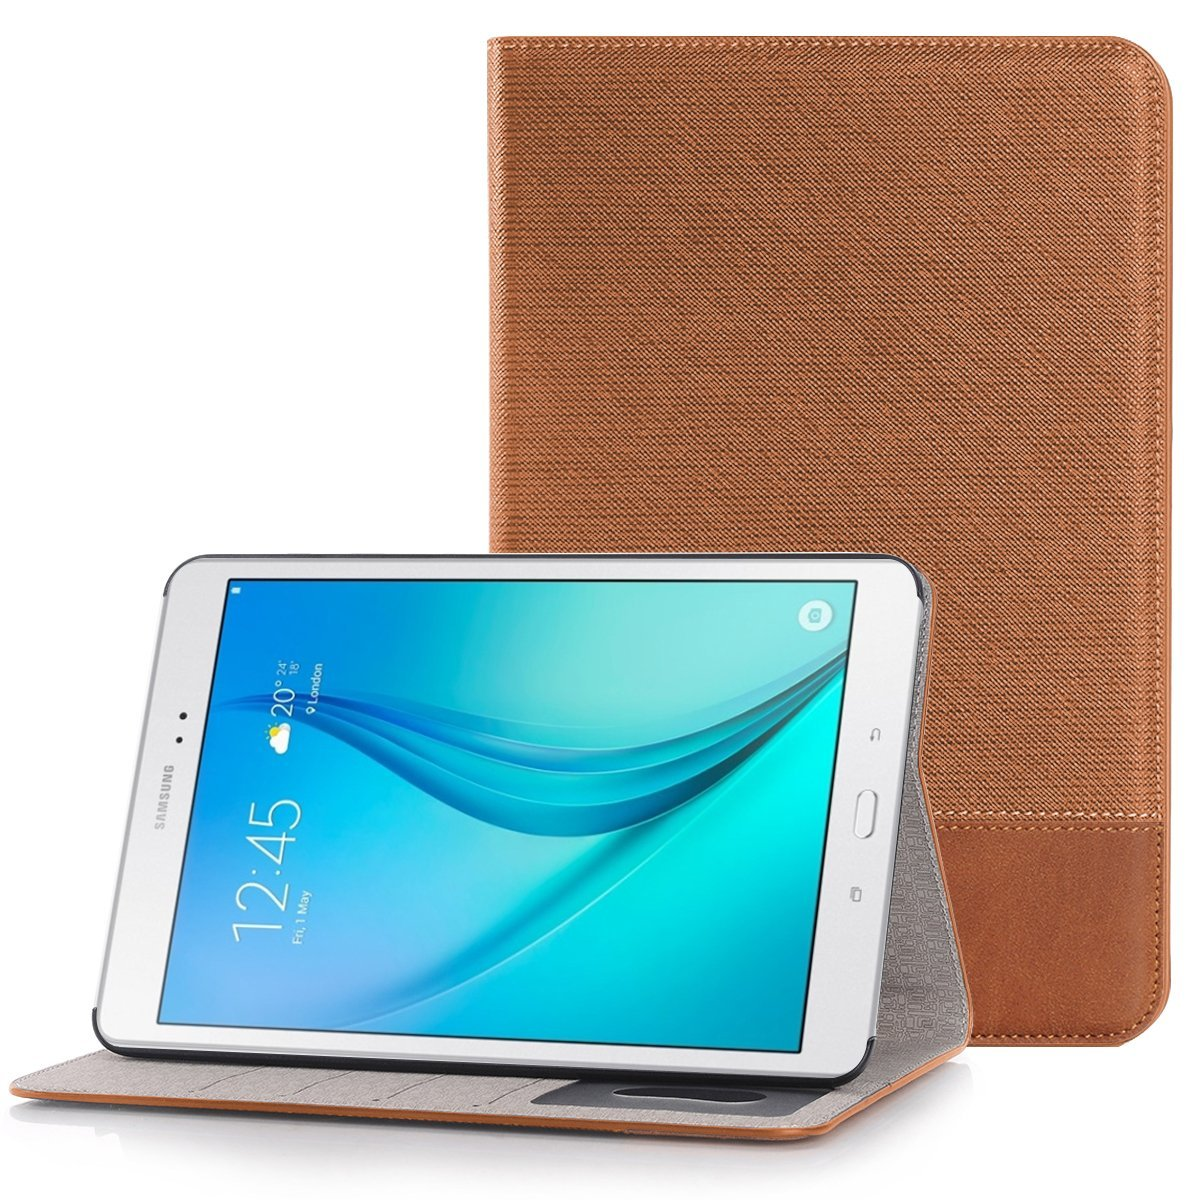 Mignova Samsung Galaxy Tab A 9.7 folio Case - , Kickstand ,Card Pocket Folio Leather Case Cover for Galaxy Tab A Tablet 9.7 inch, SM-T550 P550 (Galaxy Tab A 9.7 (T550) (Brown)